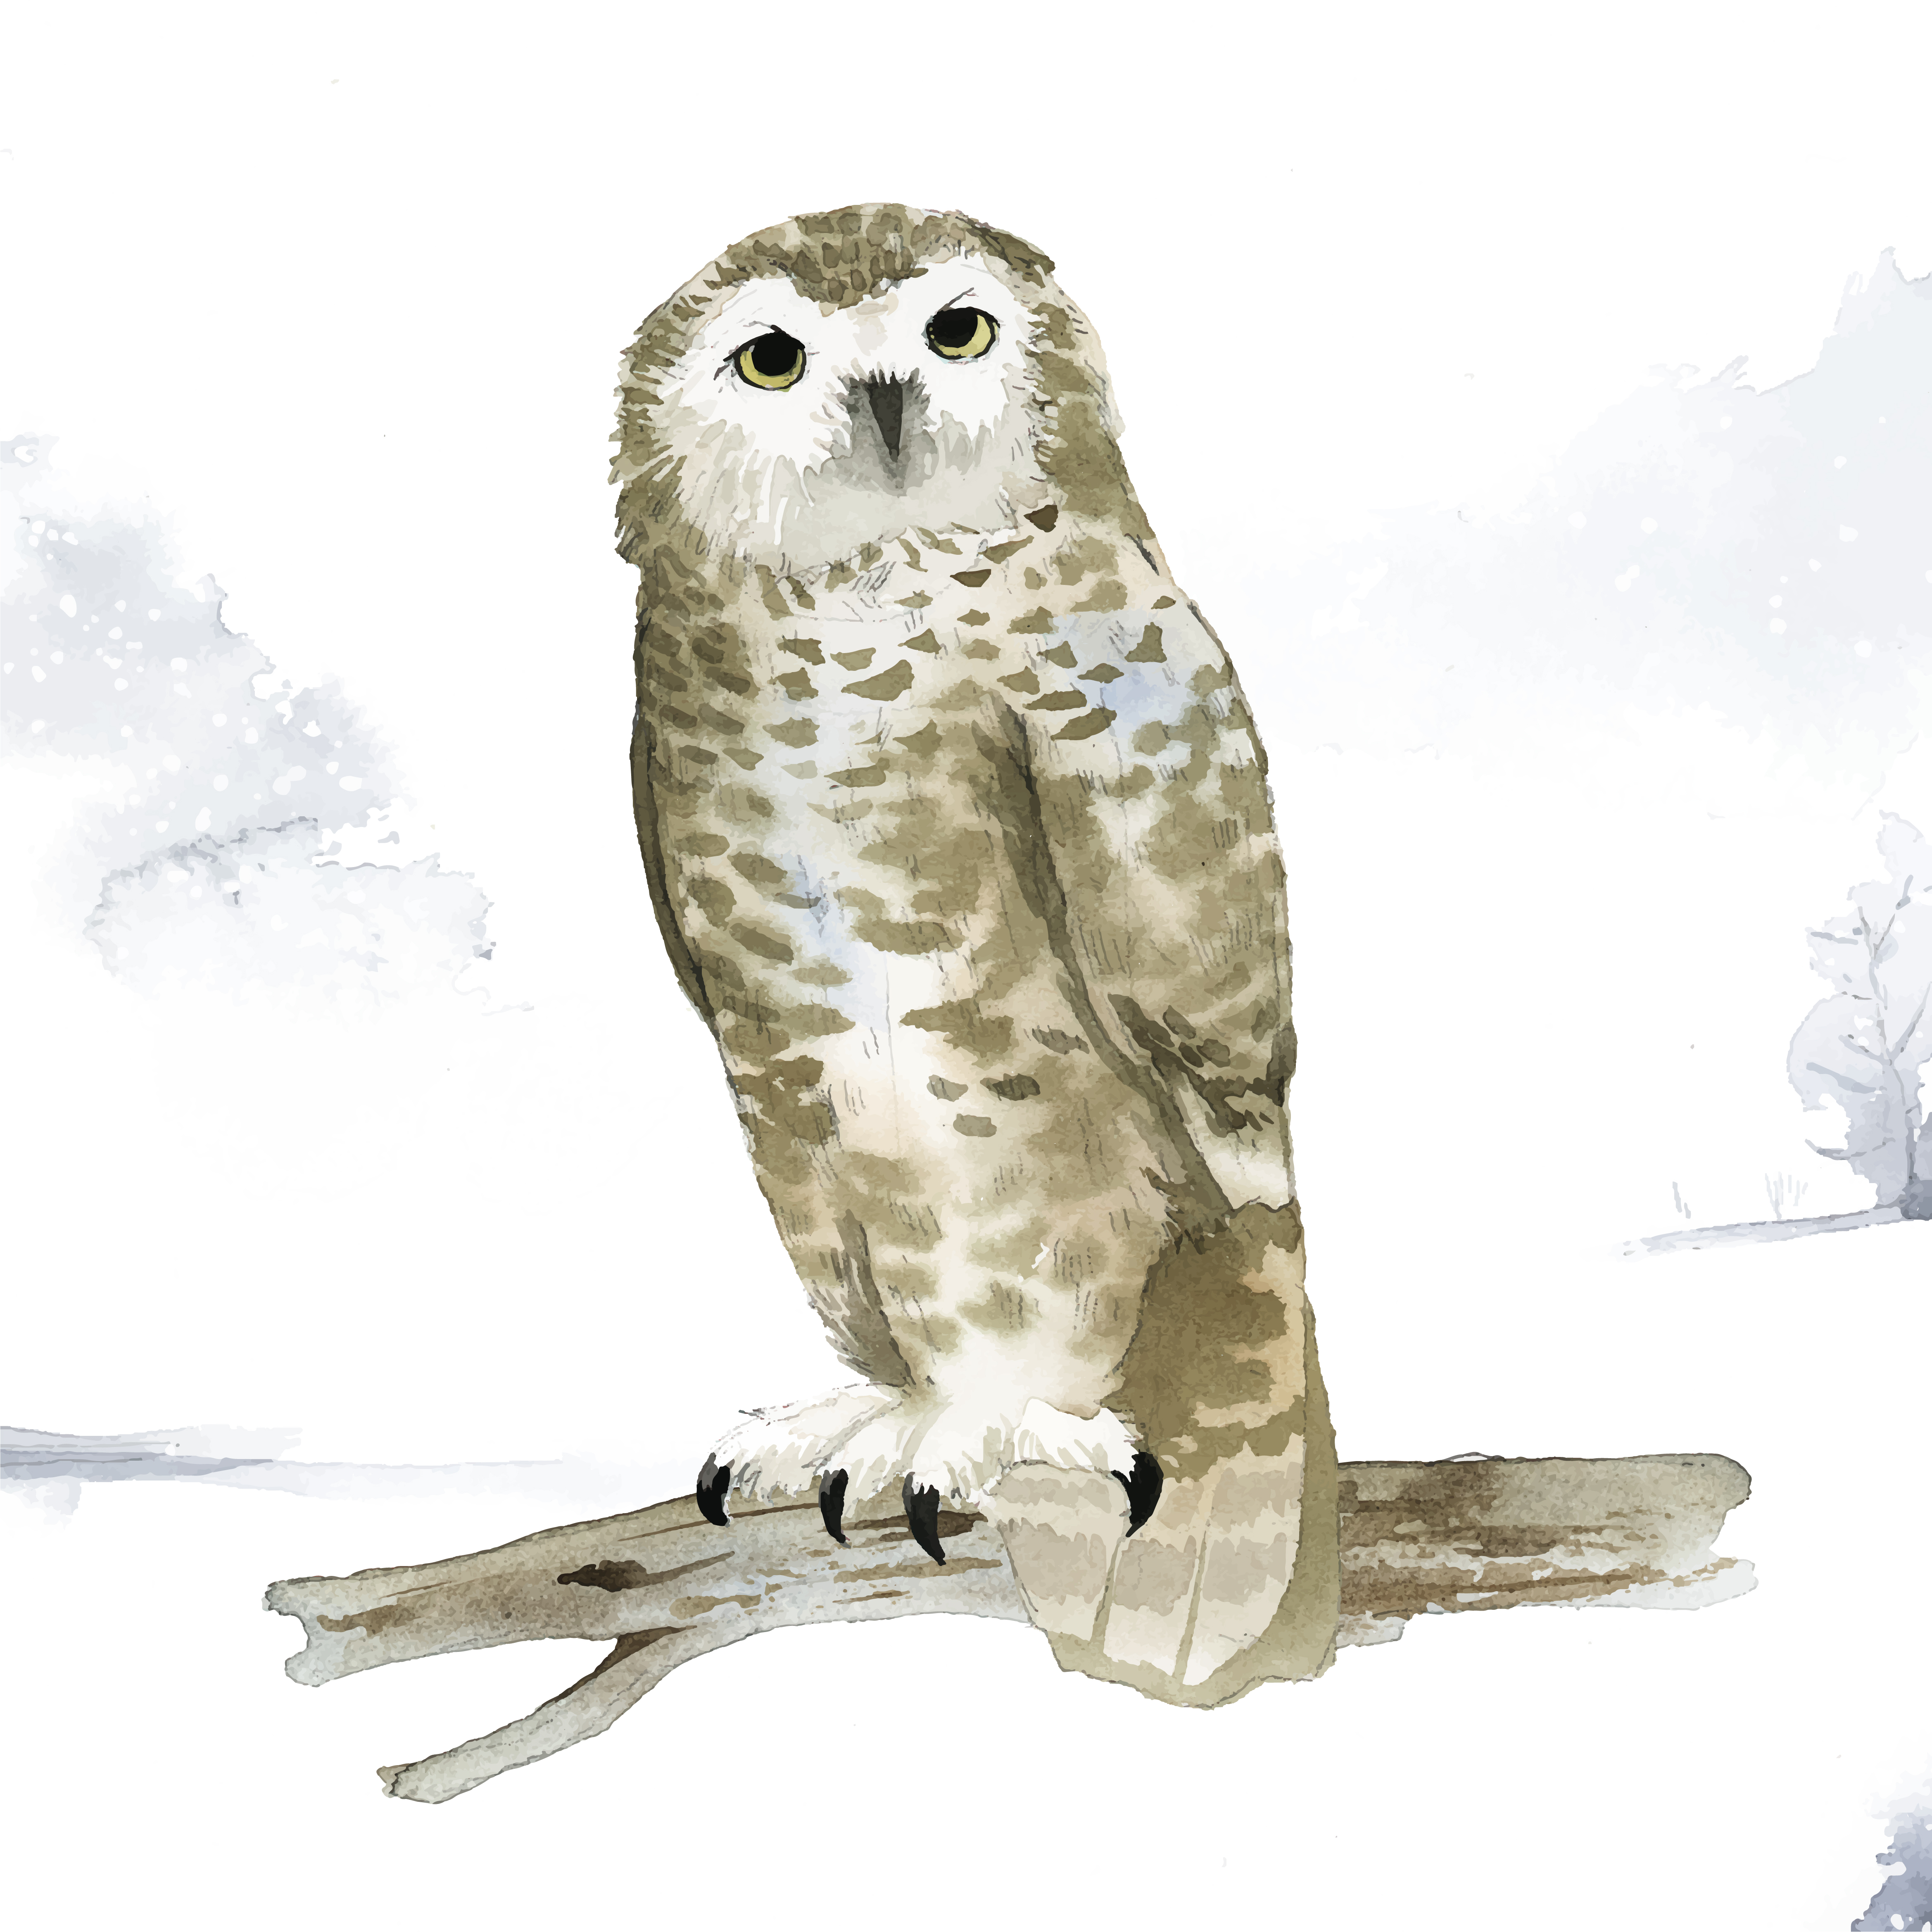 Snowy owl in winter watercolor style vector - Download ...